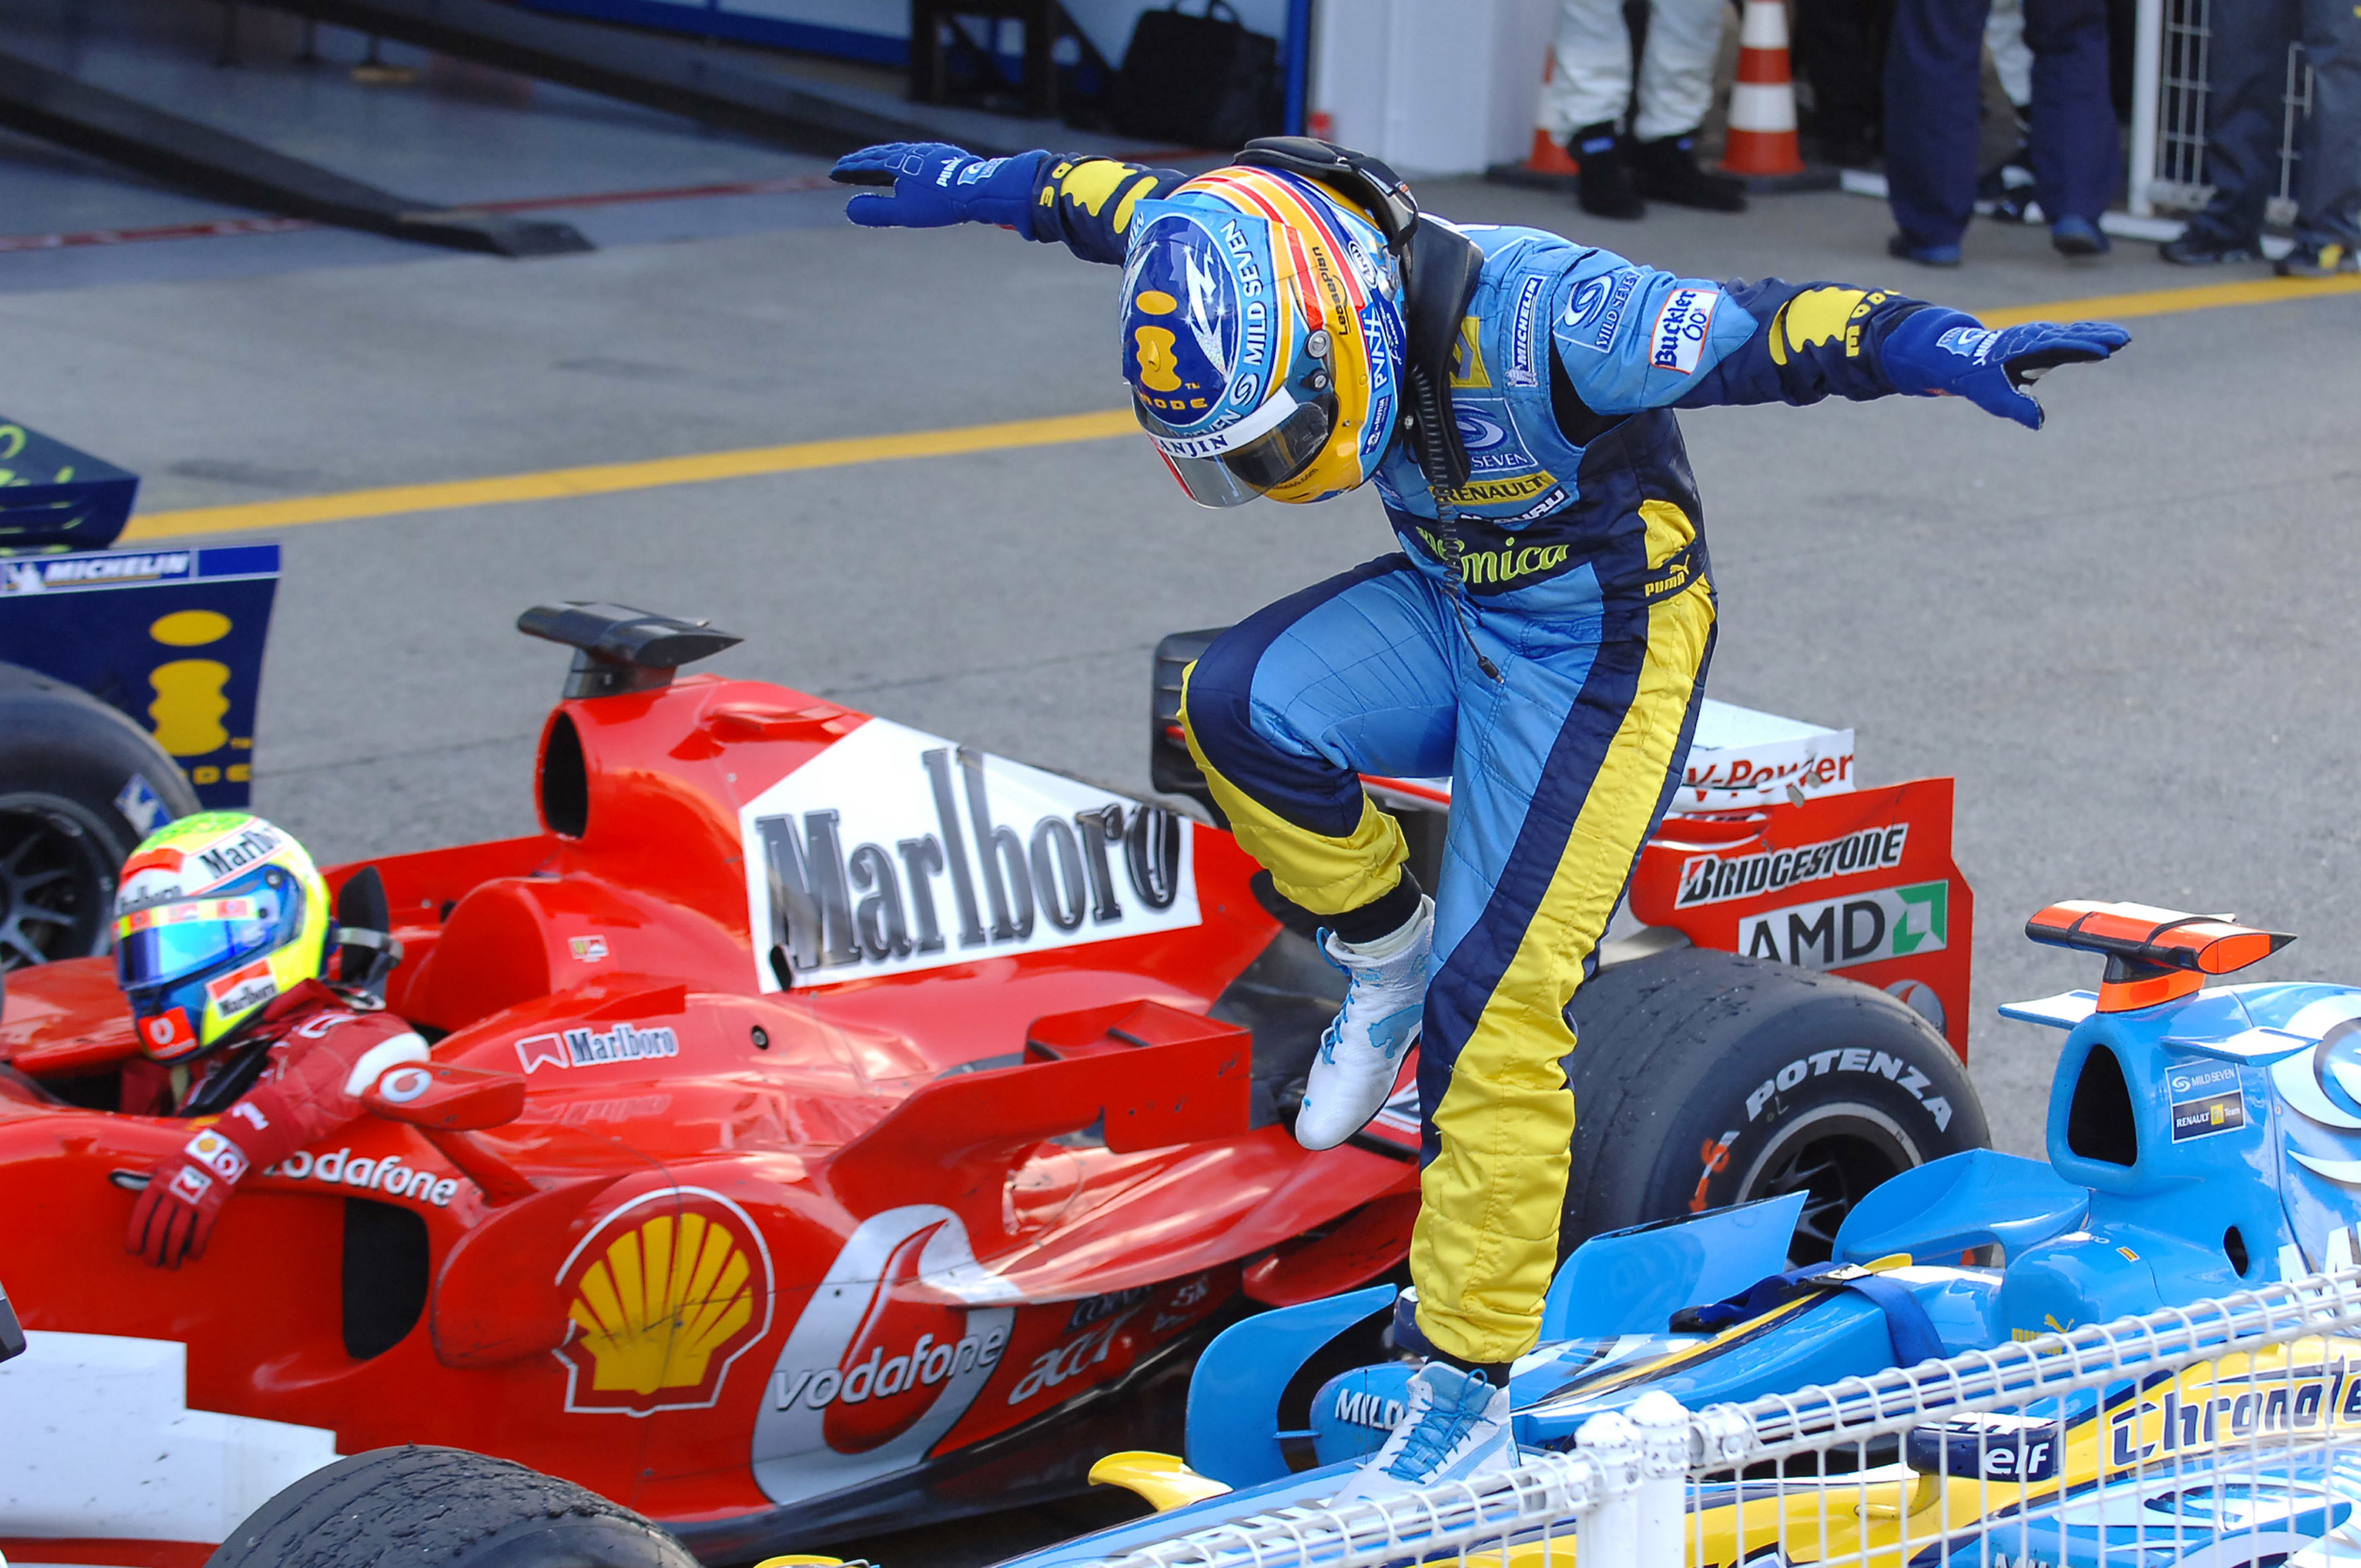 fernando-alonso jump formula-one Sport HD Wallpaper